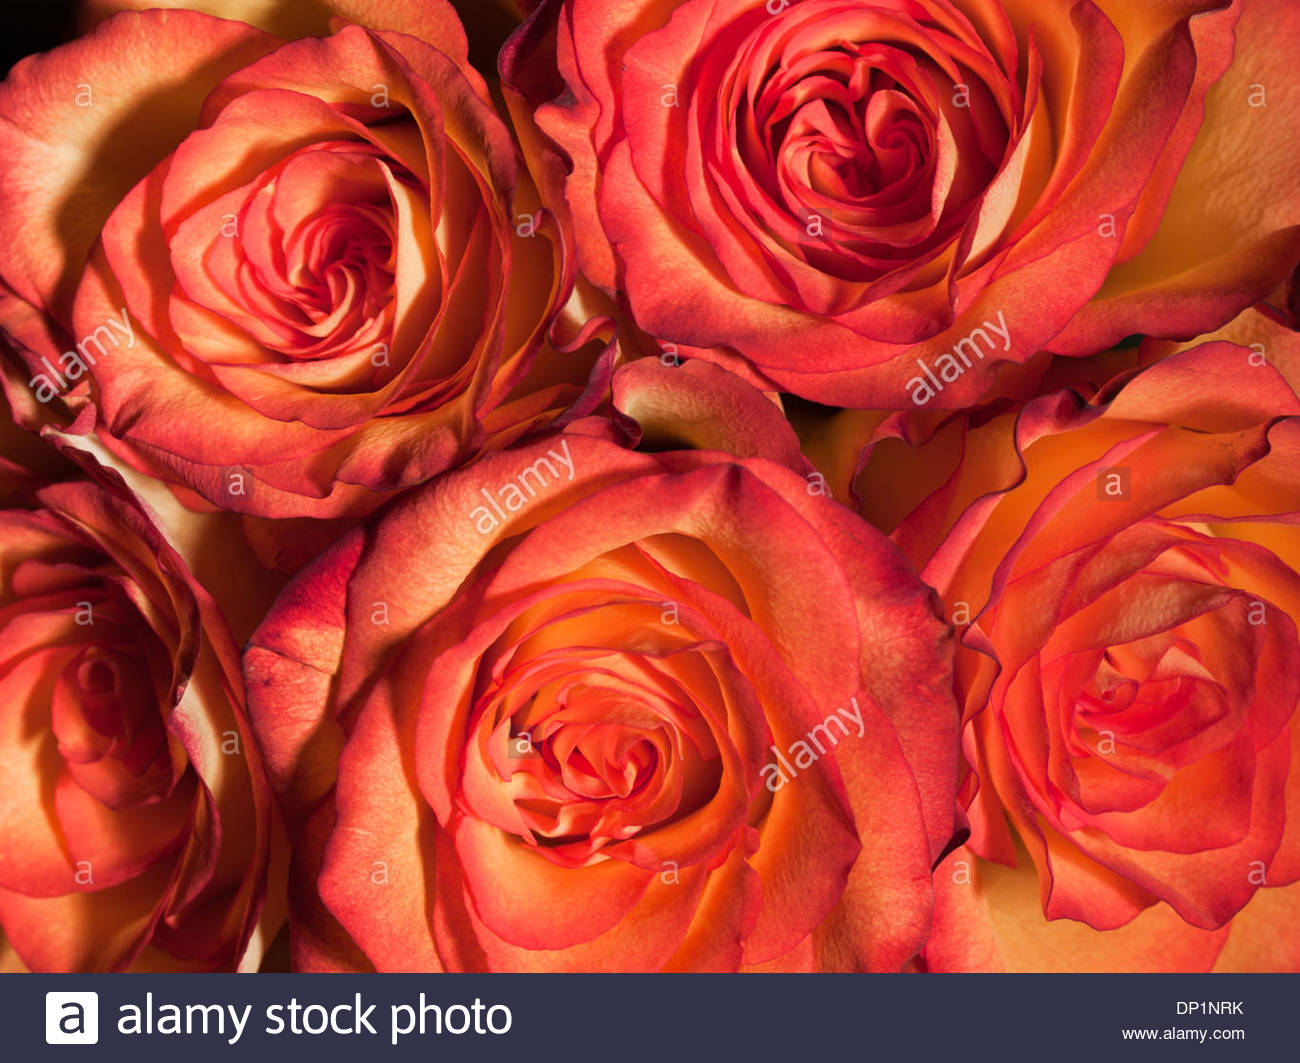 Close up of roses - Stock Image